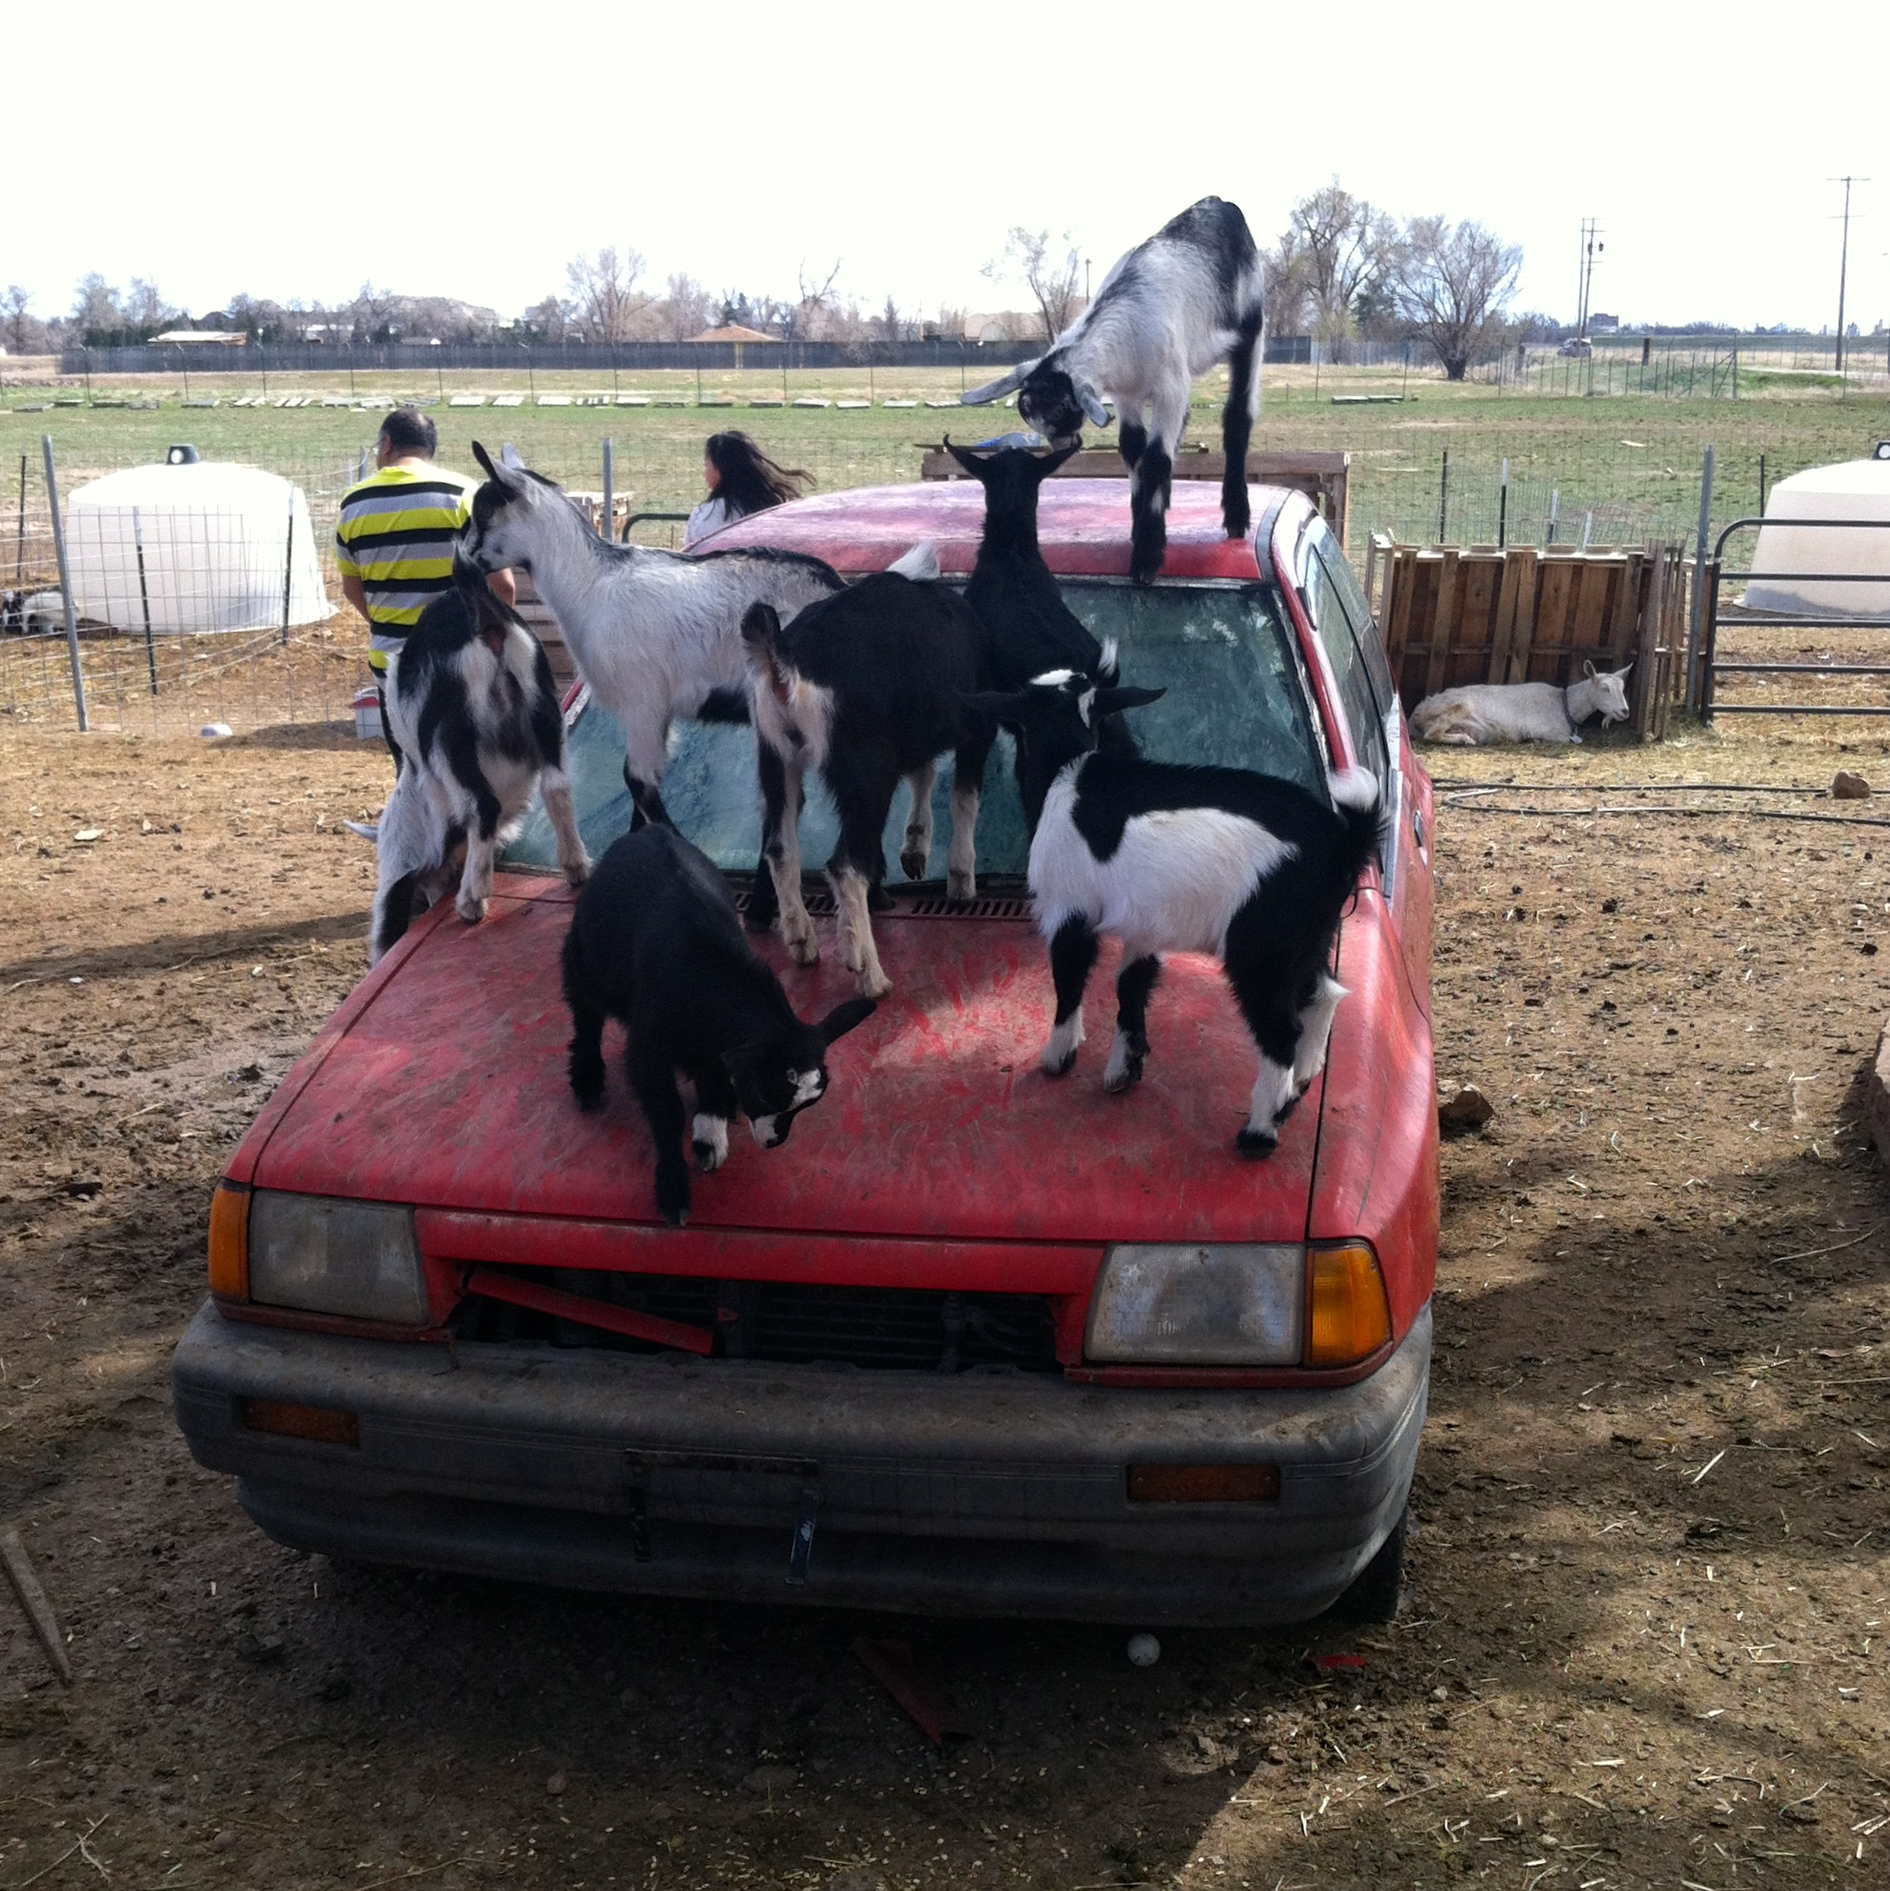 they even get to use this old car as their own personal jungle gym.